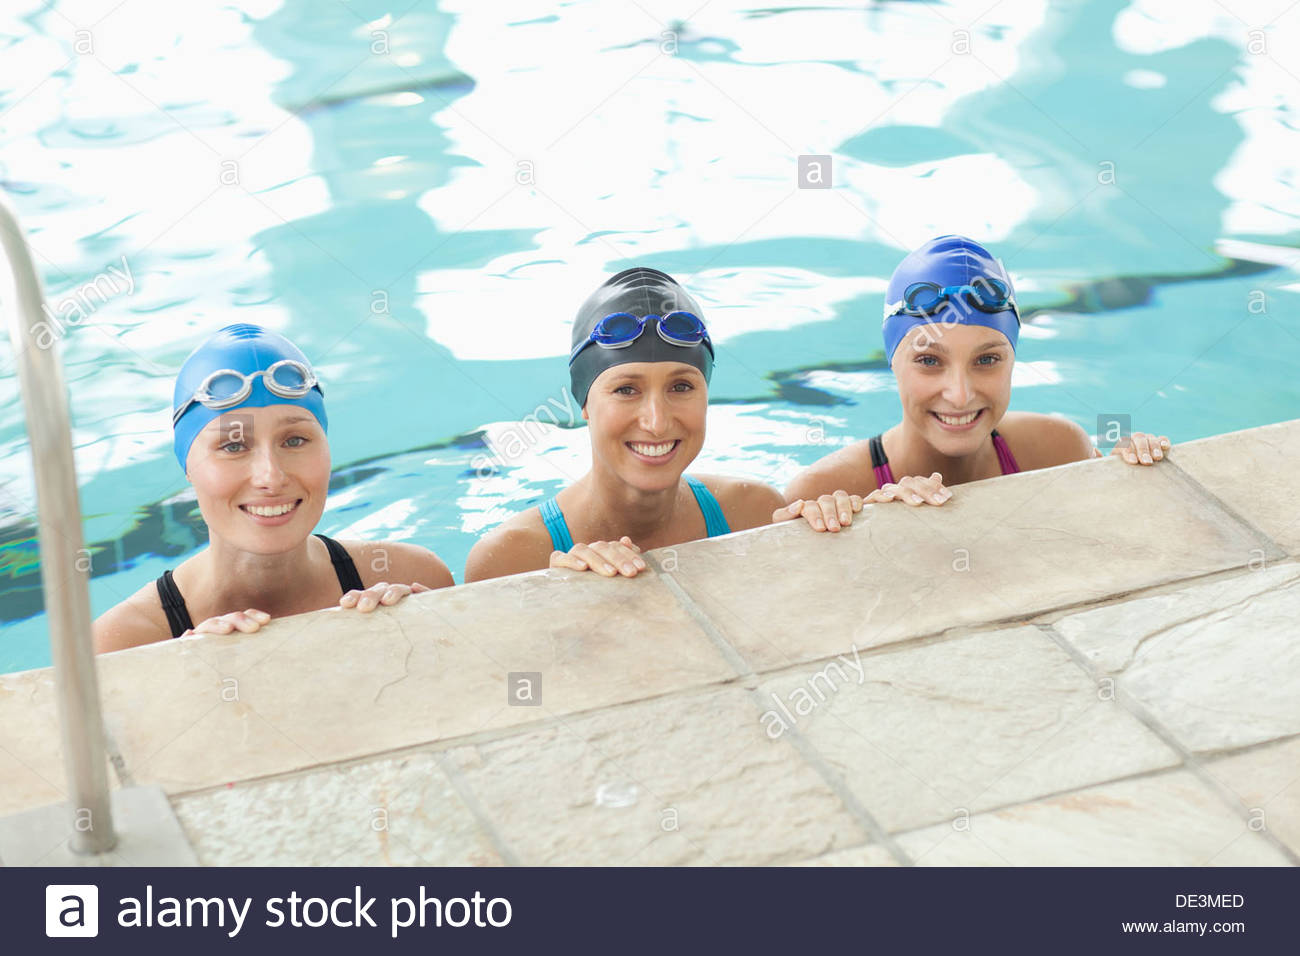 Portrait of smiling women at edge of swimming pool - Stock Image